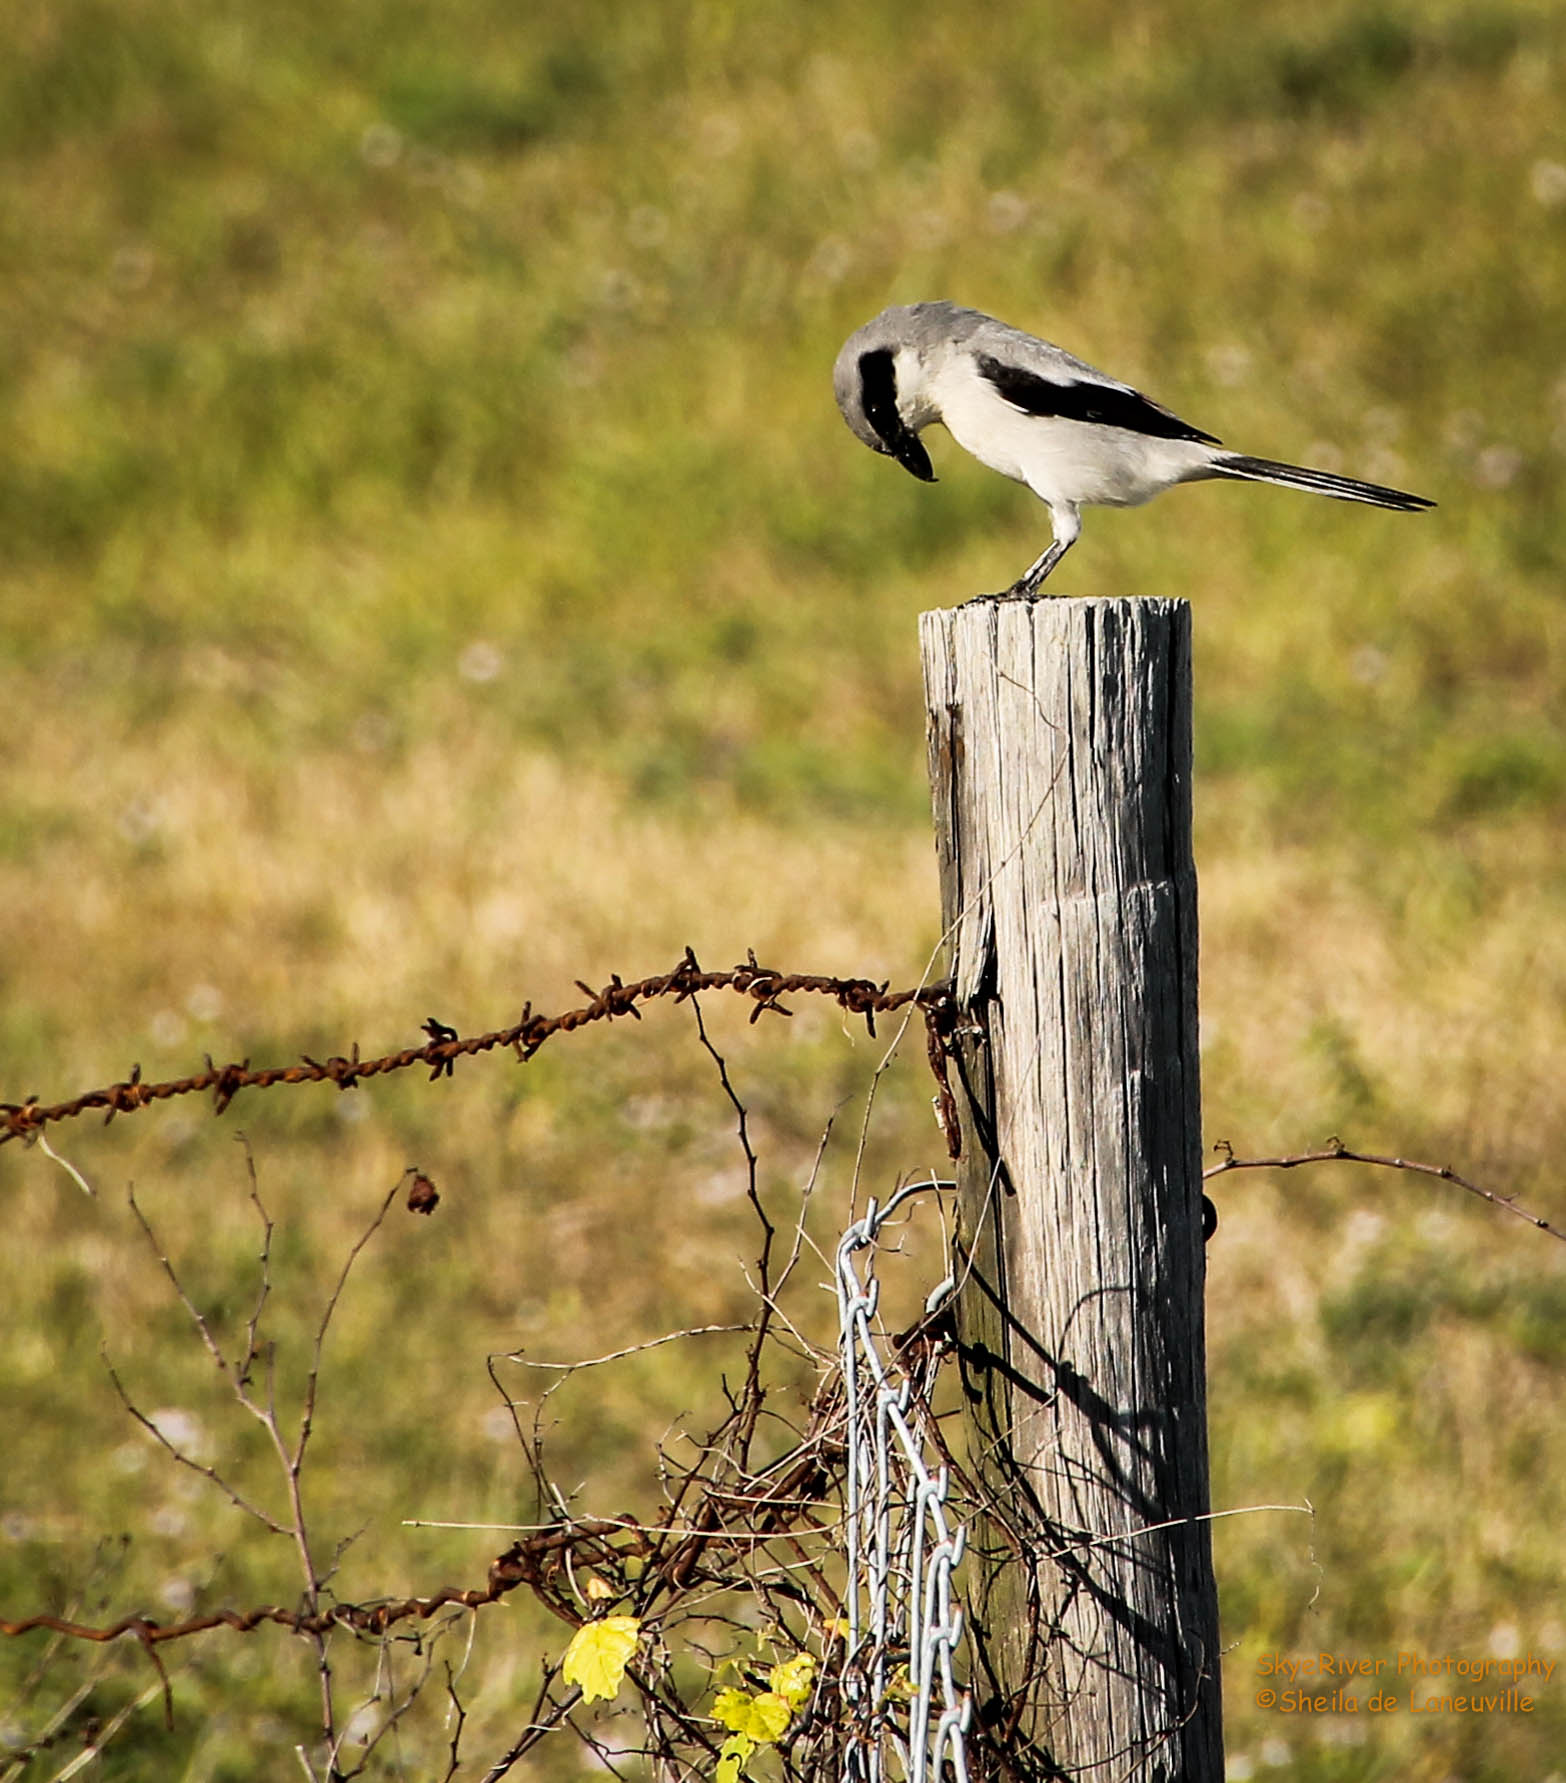 An old barbed wire fence wolf song